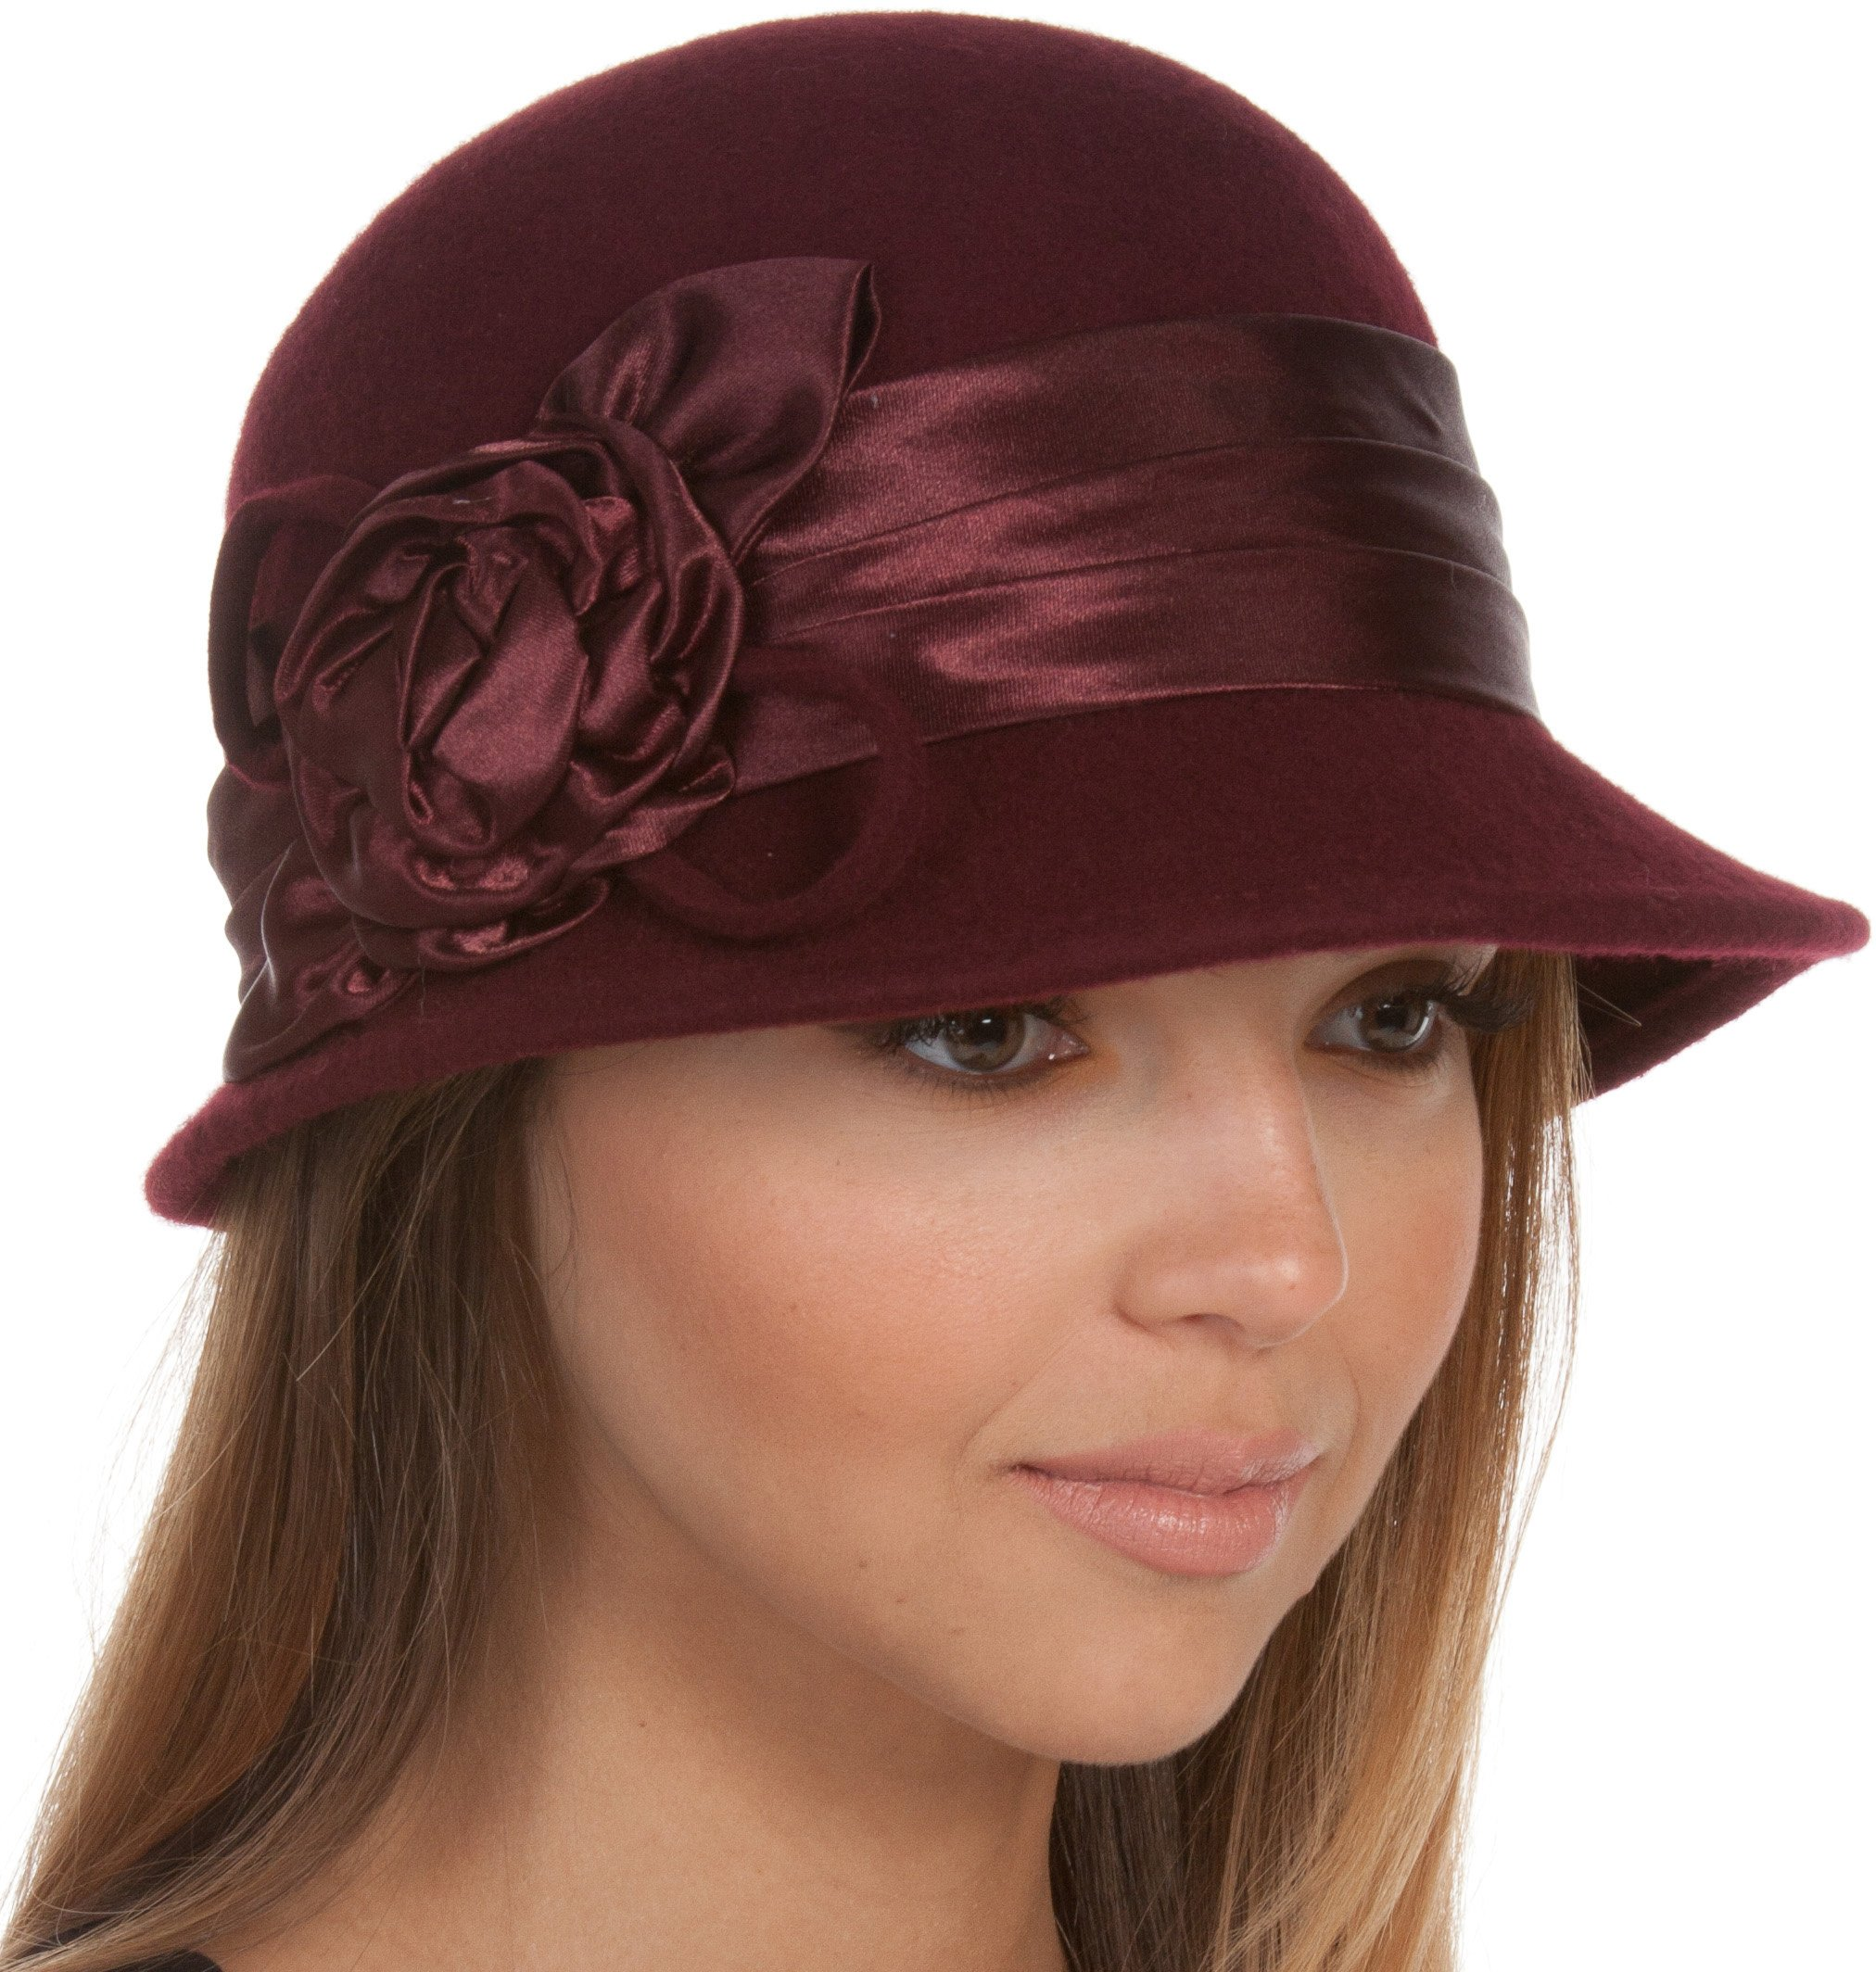 EH1121LC - Womens Vintage Style 100% Wool Cloche Bucket Winter Hat with Satin Flower Accent ( 6 Colors ) - Burgandy/One Size by Sakkas